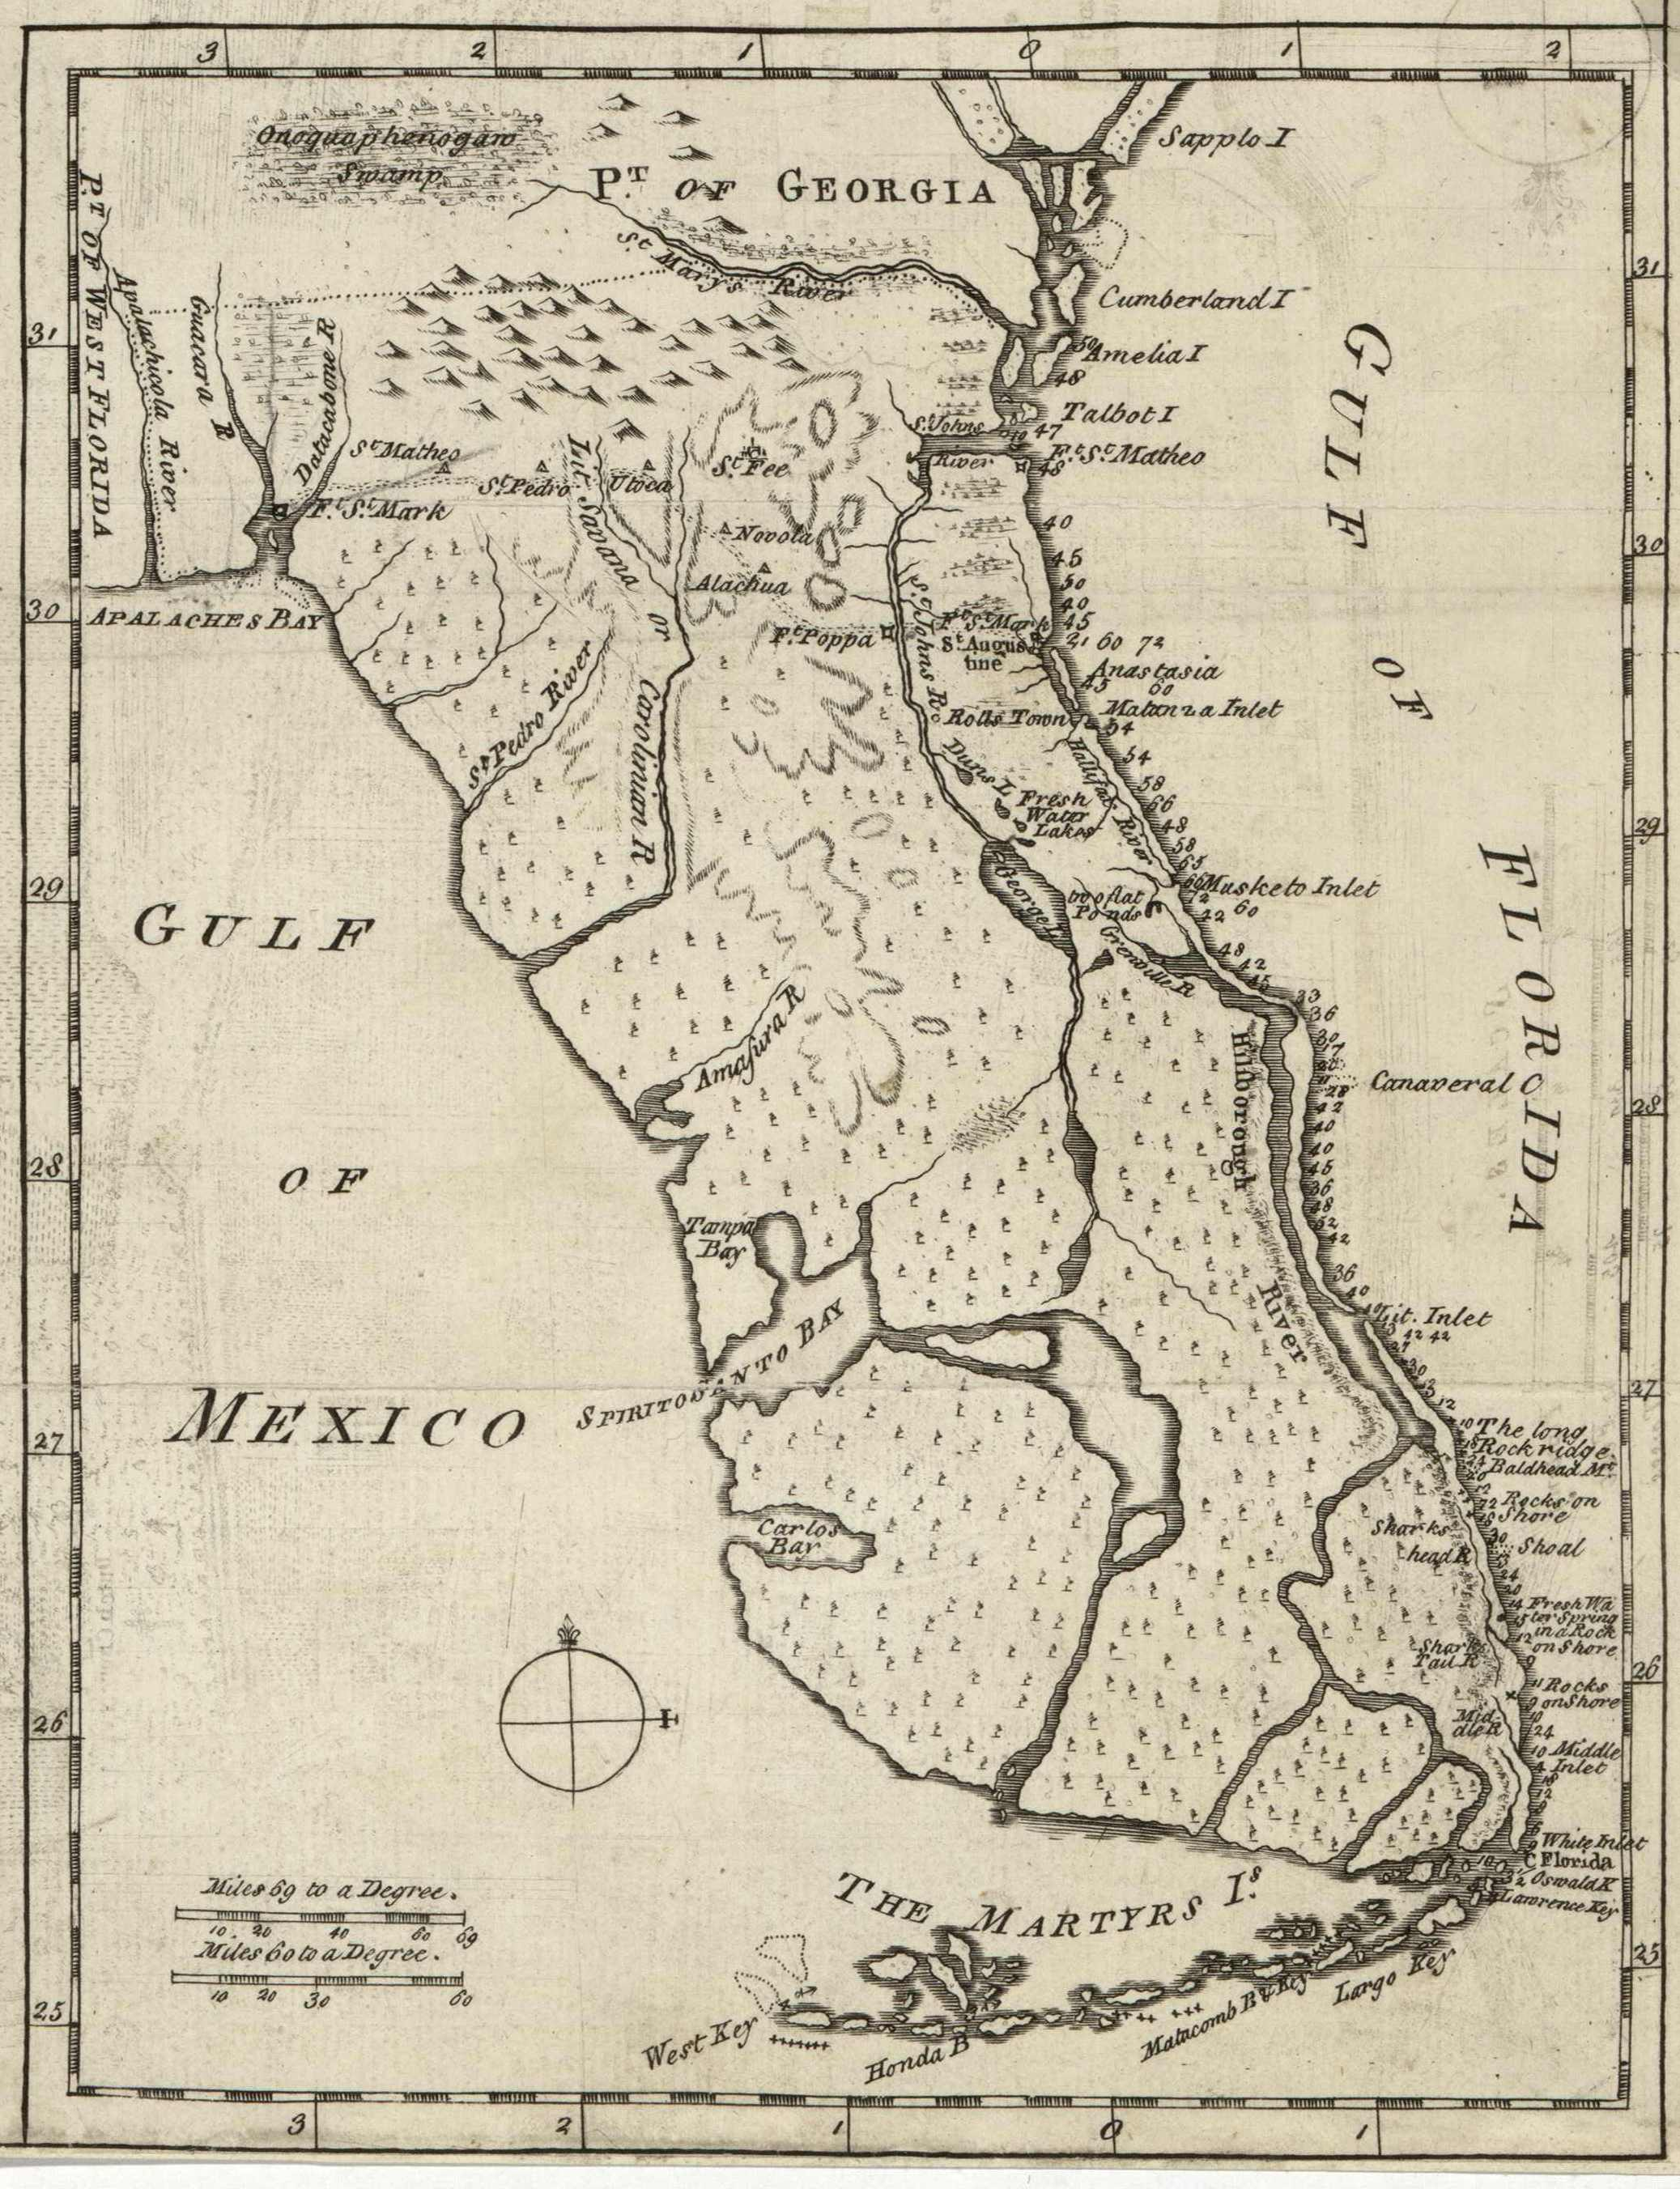 Map De Florida.File Map Of Florida By John De Solis 1764 Jpg Wikimedia Commons